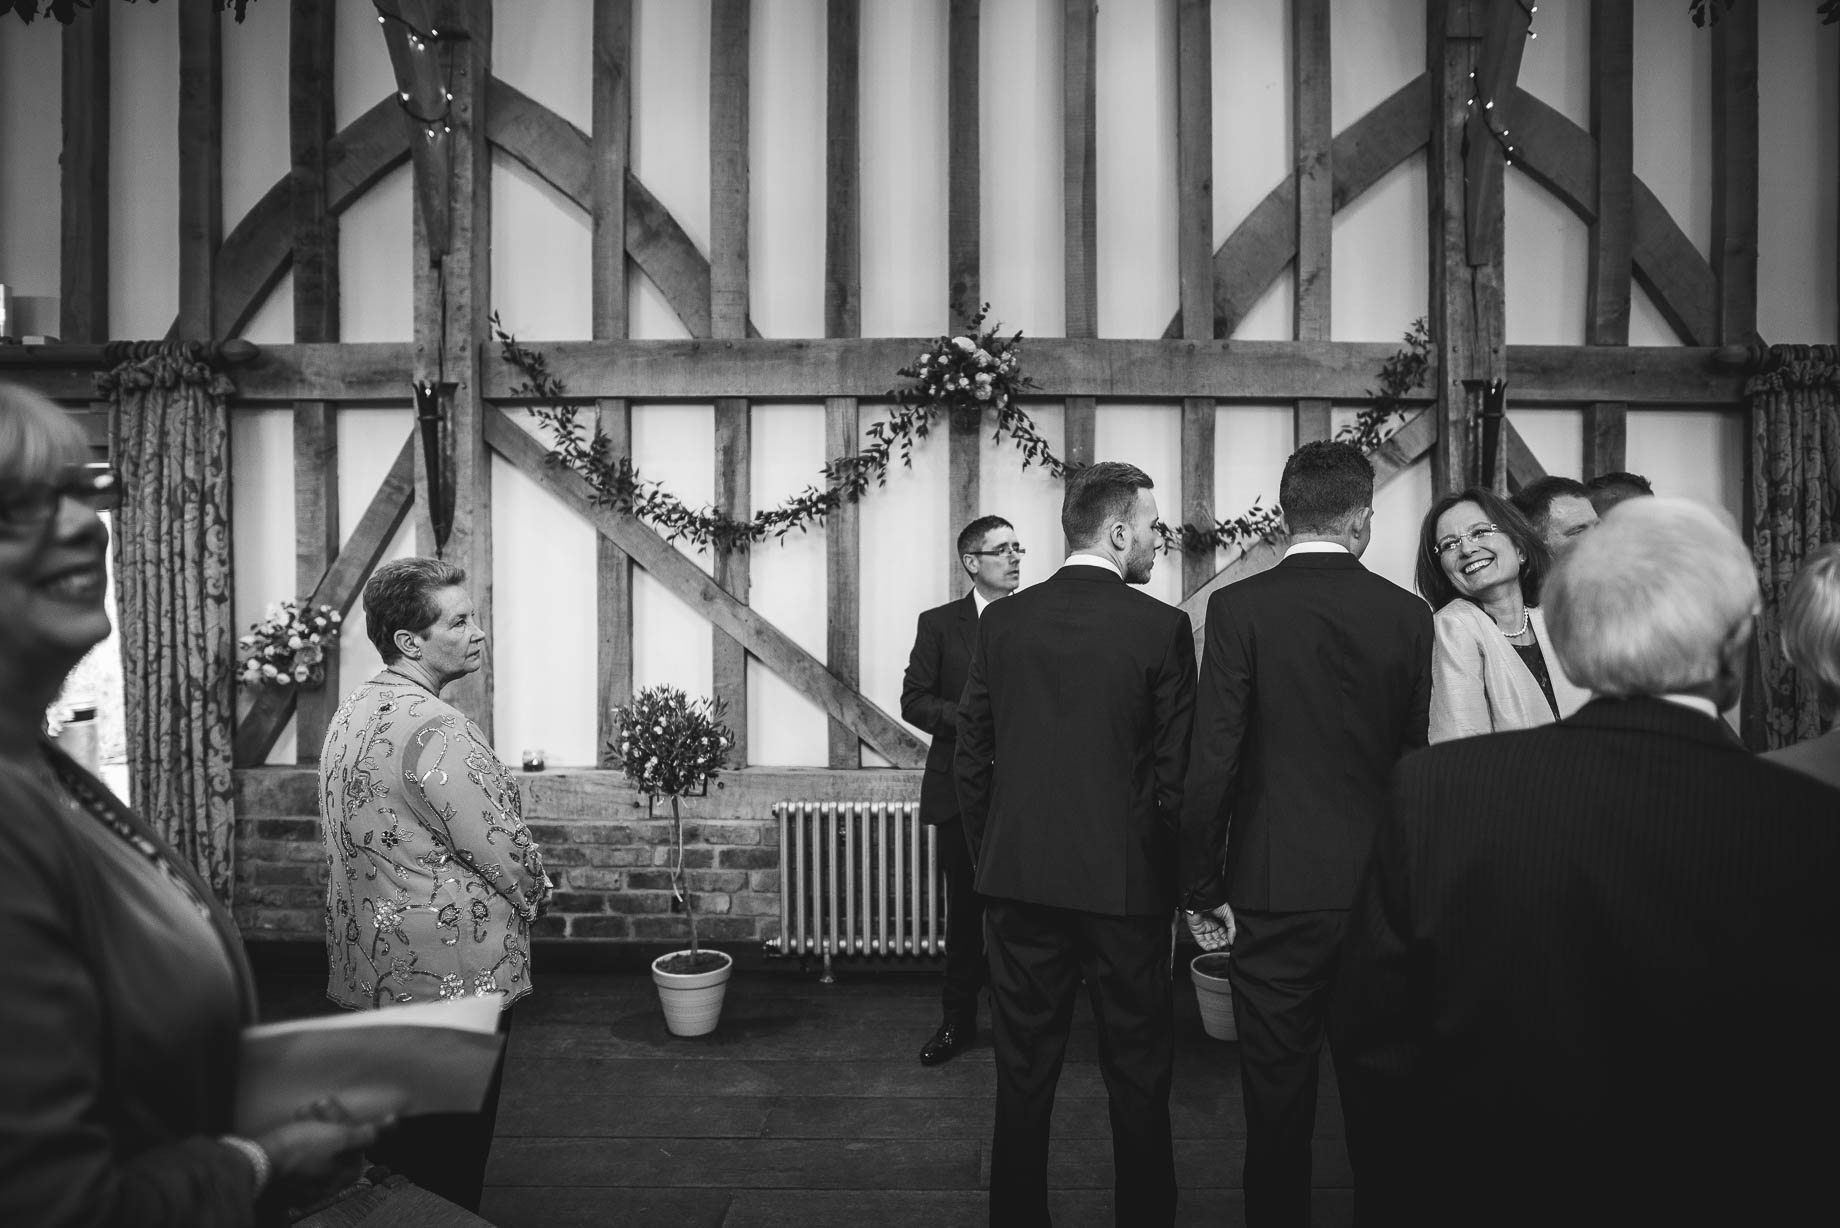 Surrey Wedding Photography by Guy Collier - Becca and James (30 of 145)